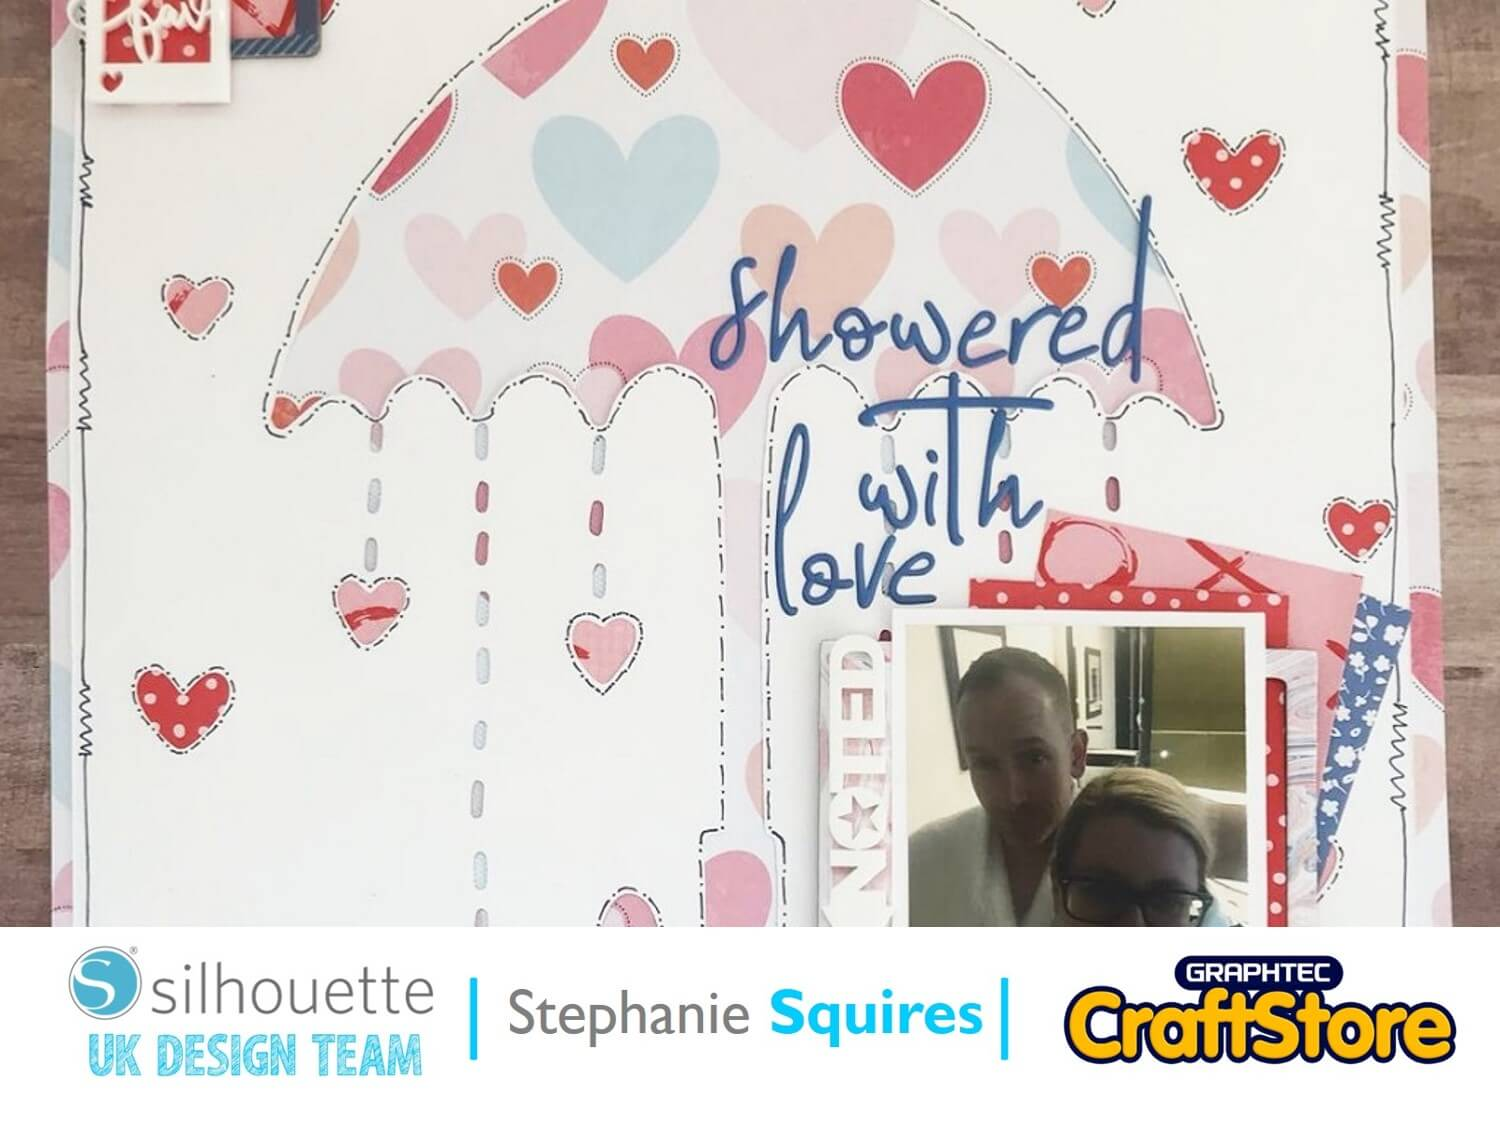 Silhouette UK Blog | Showered With Love | Stephanie Squires